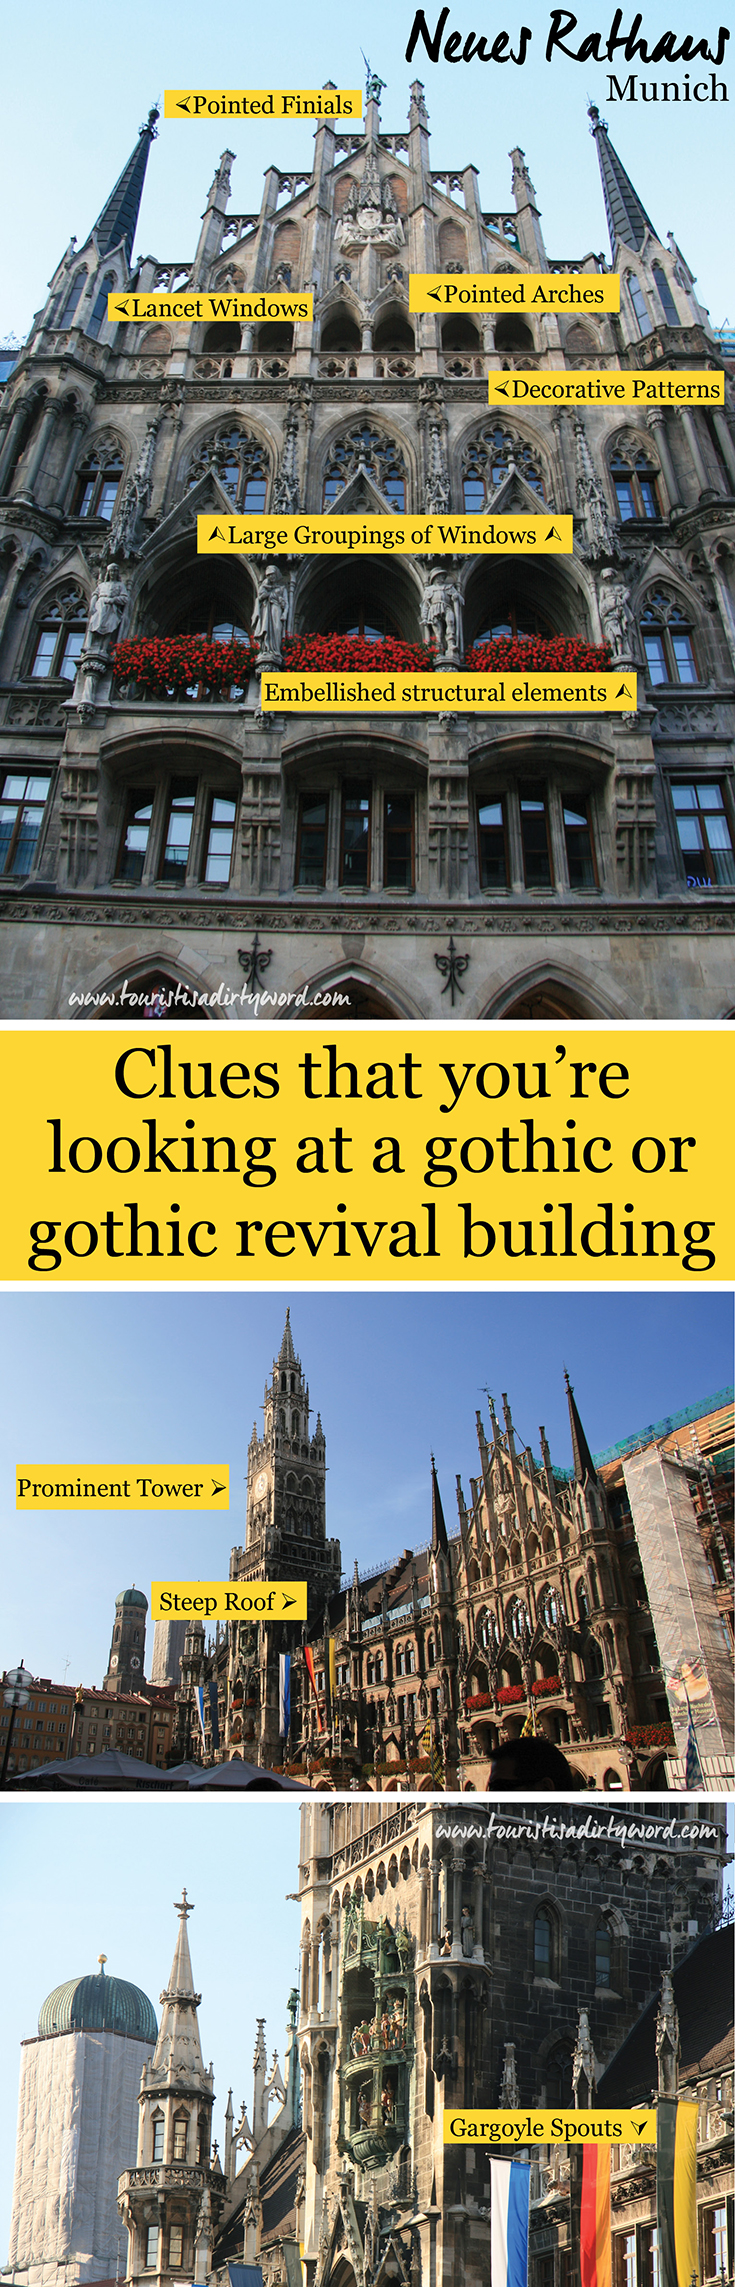 Clues that you're looking at a gothic or gothic revival building • Germany Travel Blog Tourist is a Dirty Word